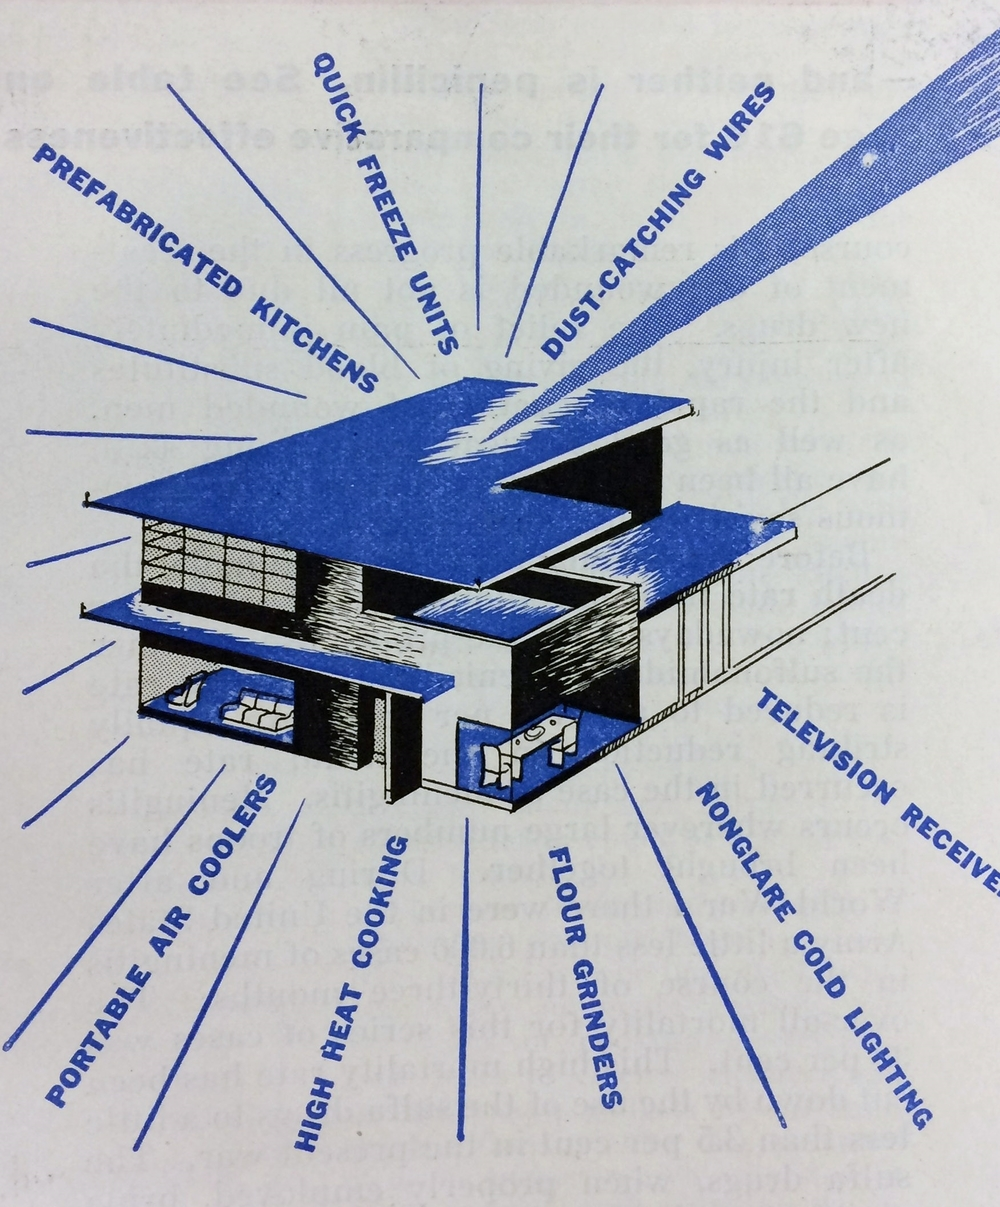 "Slattery's Postwar Home Illustration .  Illustration from Harry Slattery, ""Electricity in Your Postwar Home,""  Hygeia: The Health Magazine  22, no. 8 (August 1944), 582."